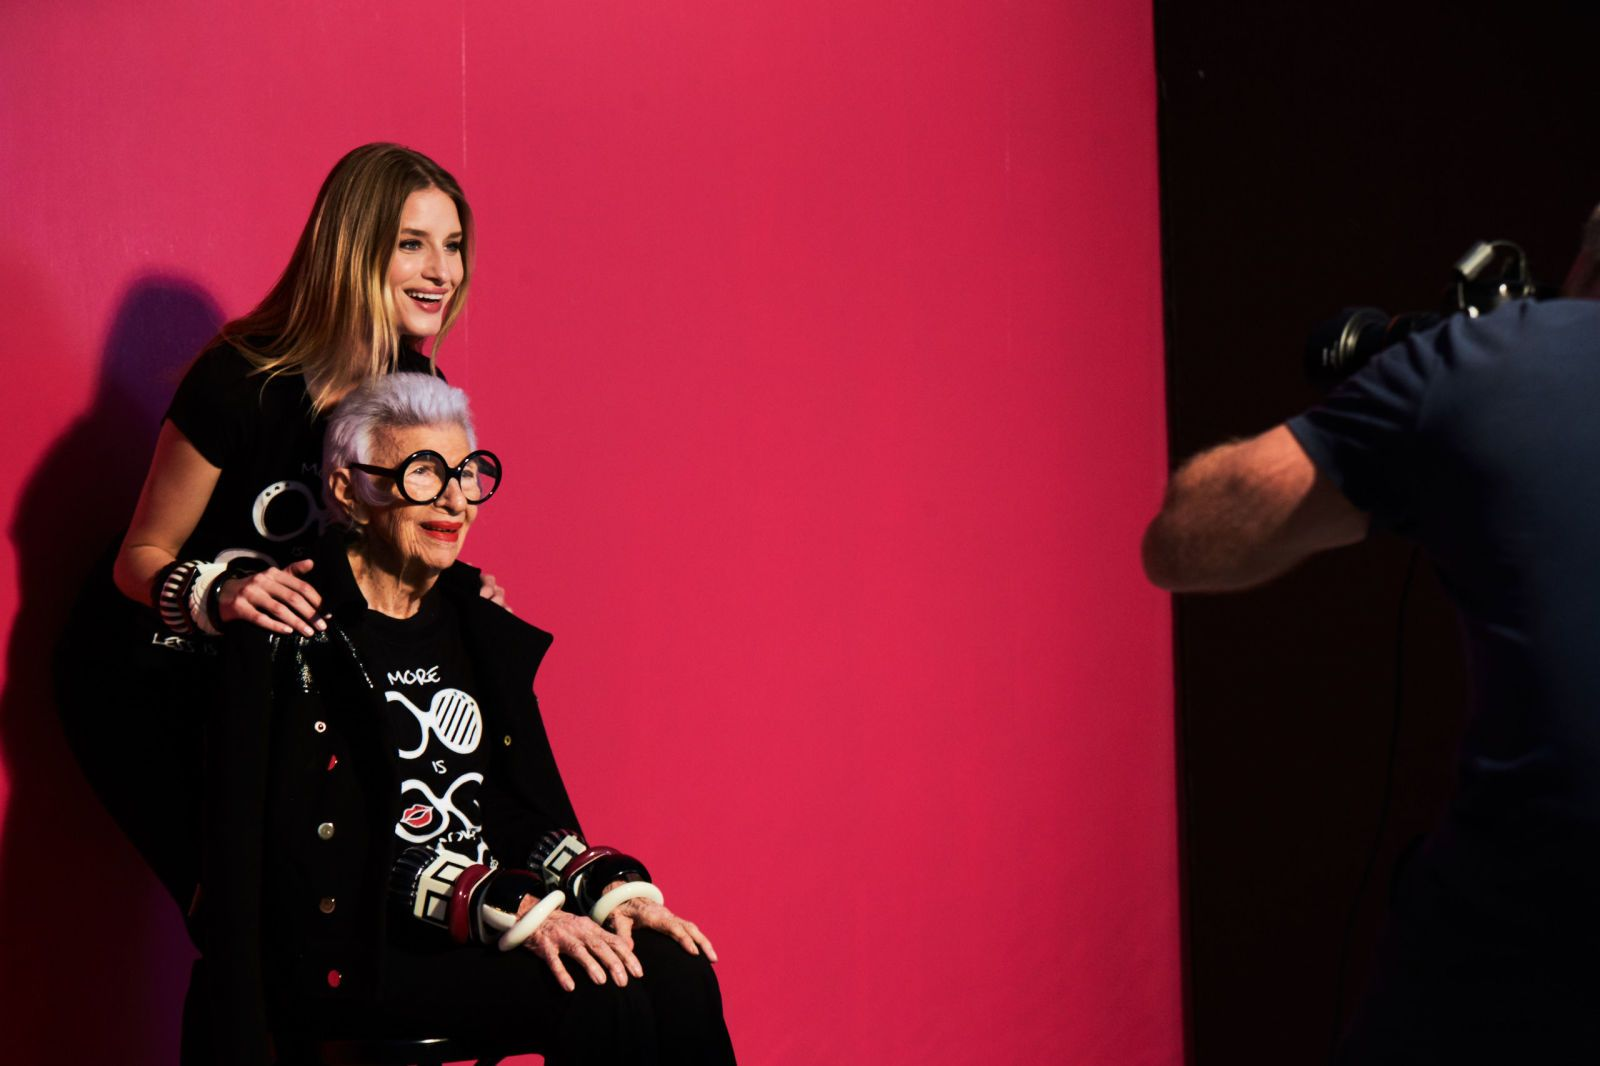 Watch Iris Apfel is getting her own line of emojis video